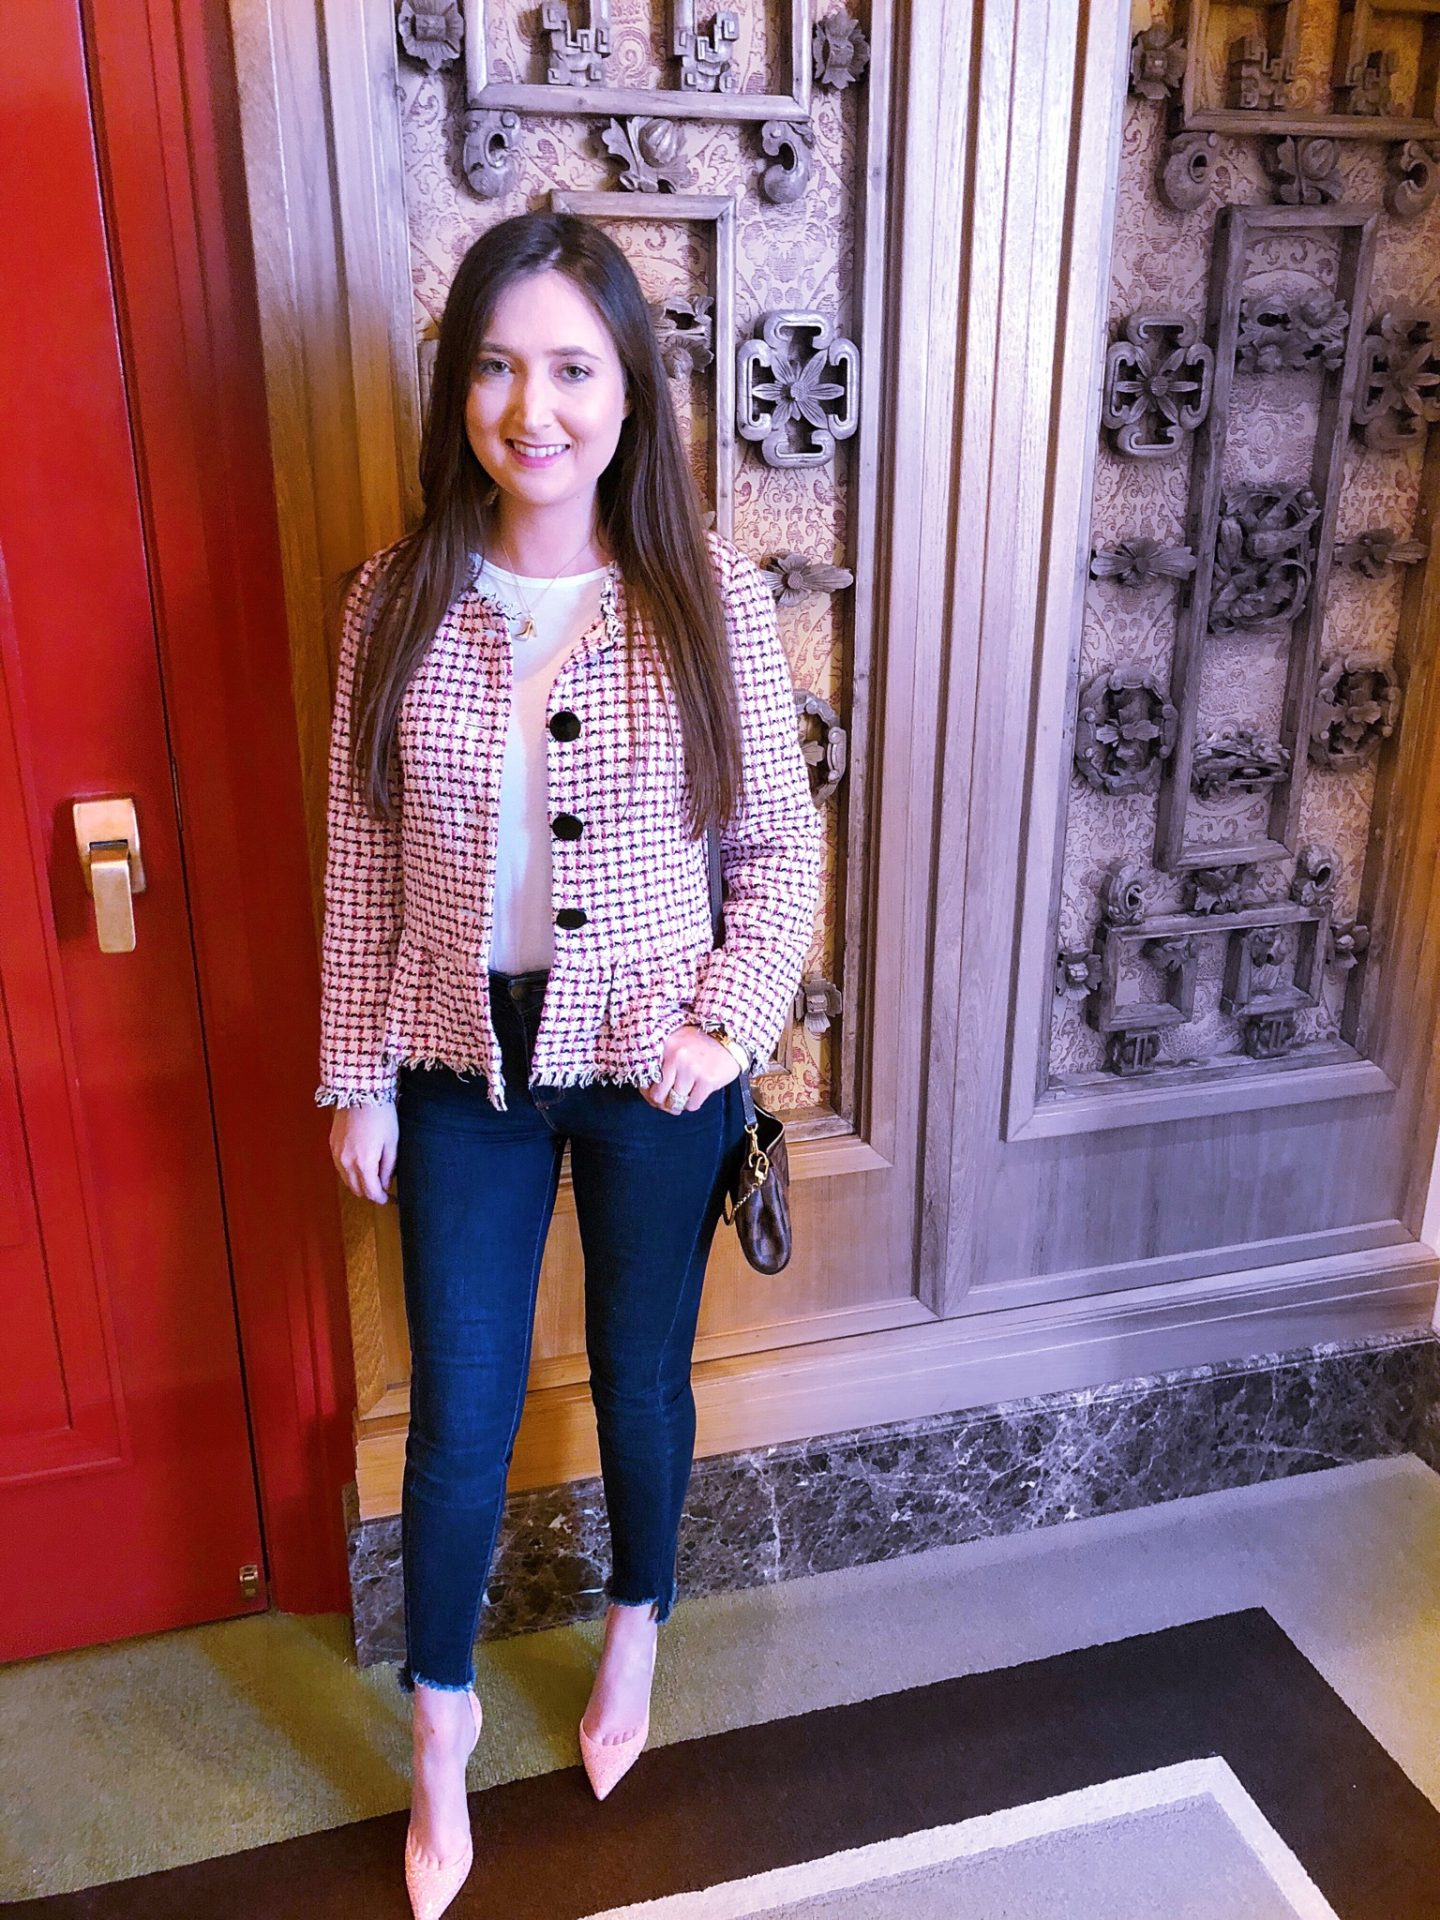 The Peninsula Chicago, the peninsula hotel chicago, kate spade tweed jacket, louboutin iriza, travel blogger, travel fashion blogger, travel blog 2018